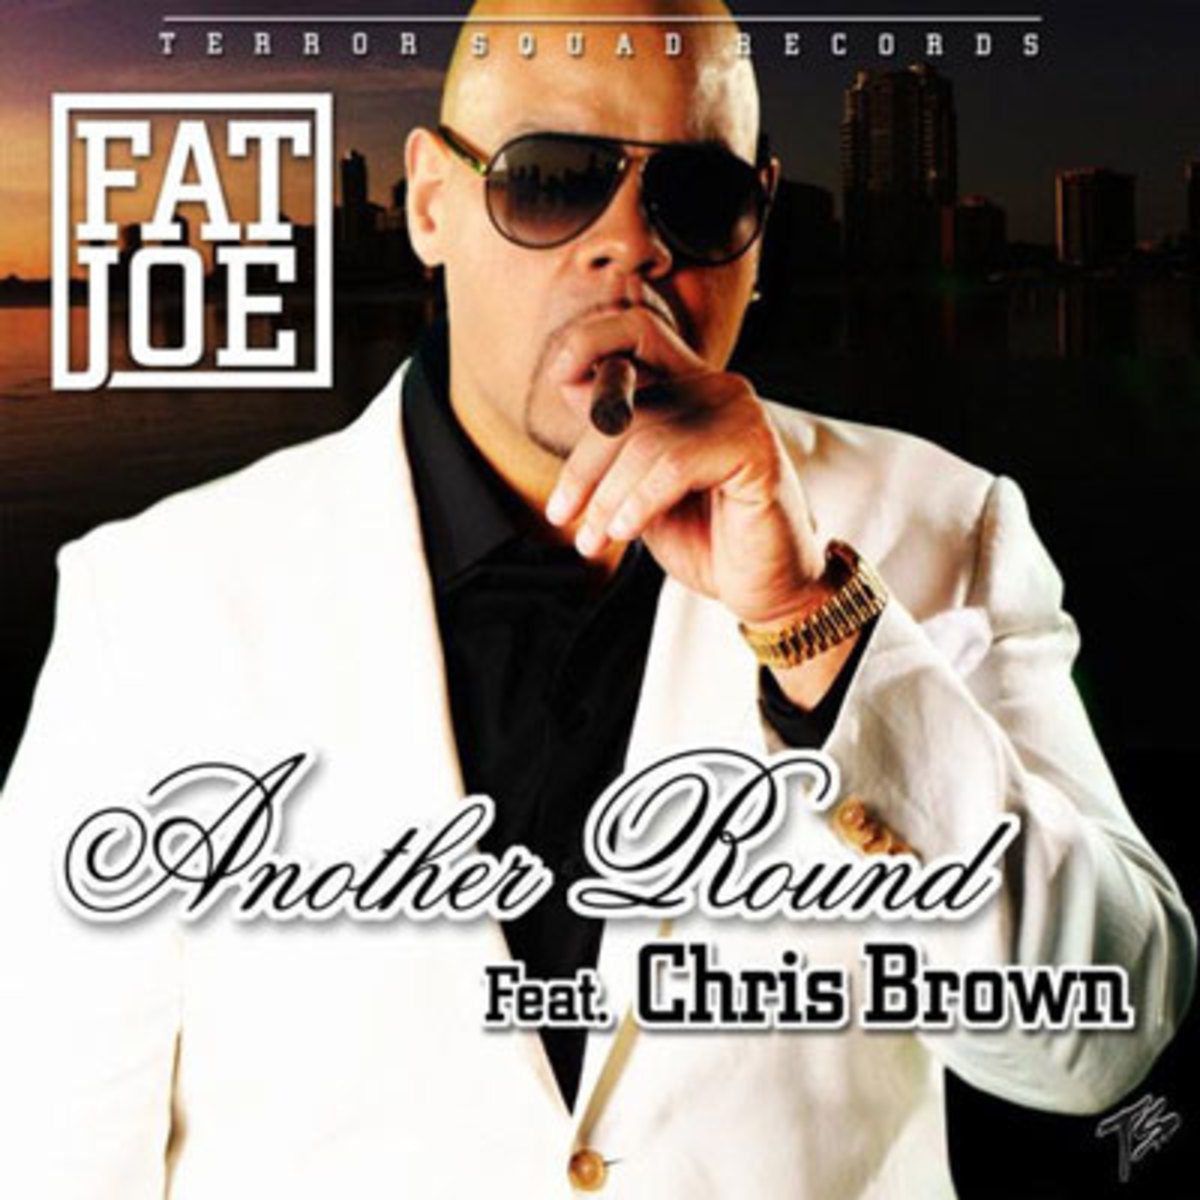 fatjoe-anotherround.jpg